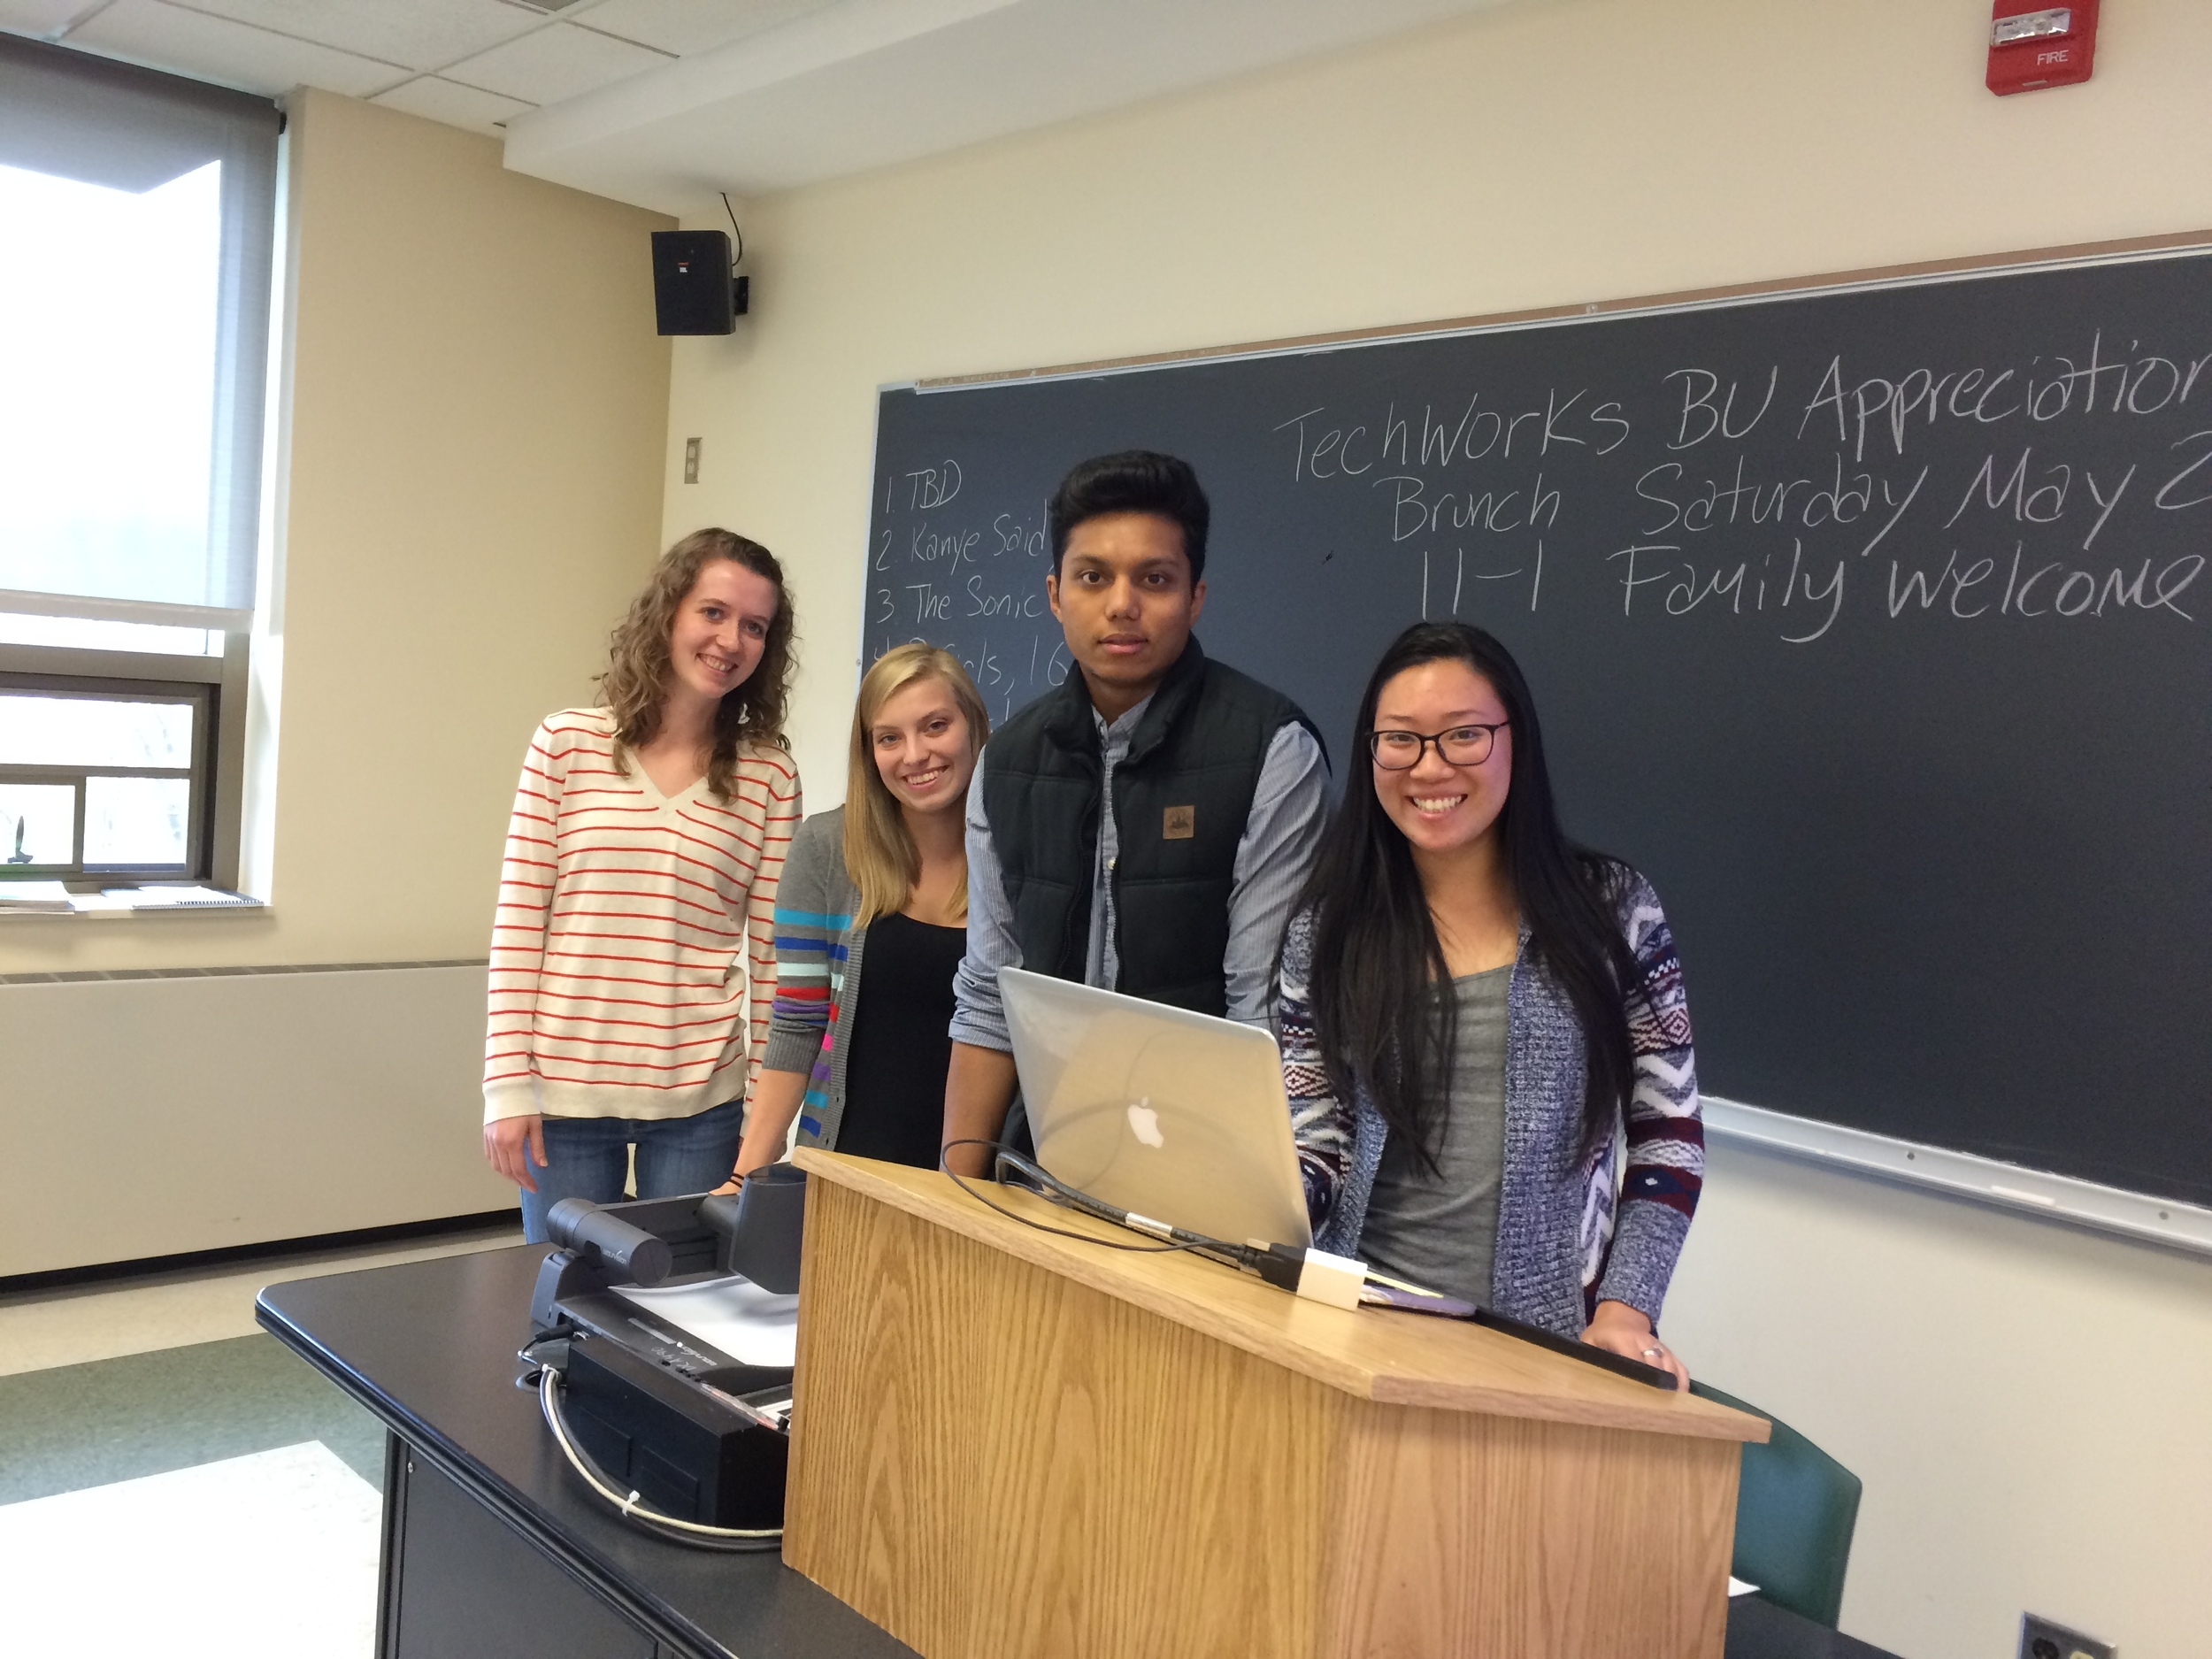 Authors of this Aural Postcard Presenting their Research (L-R) Libby Norton, Hailey Gonzalez, Nazrul Chowdhury, and Carol Huang